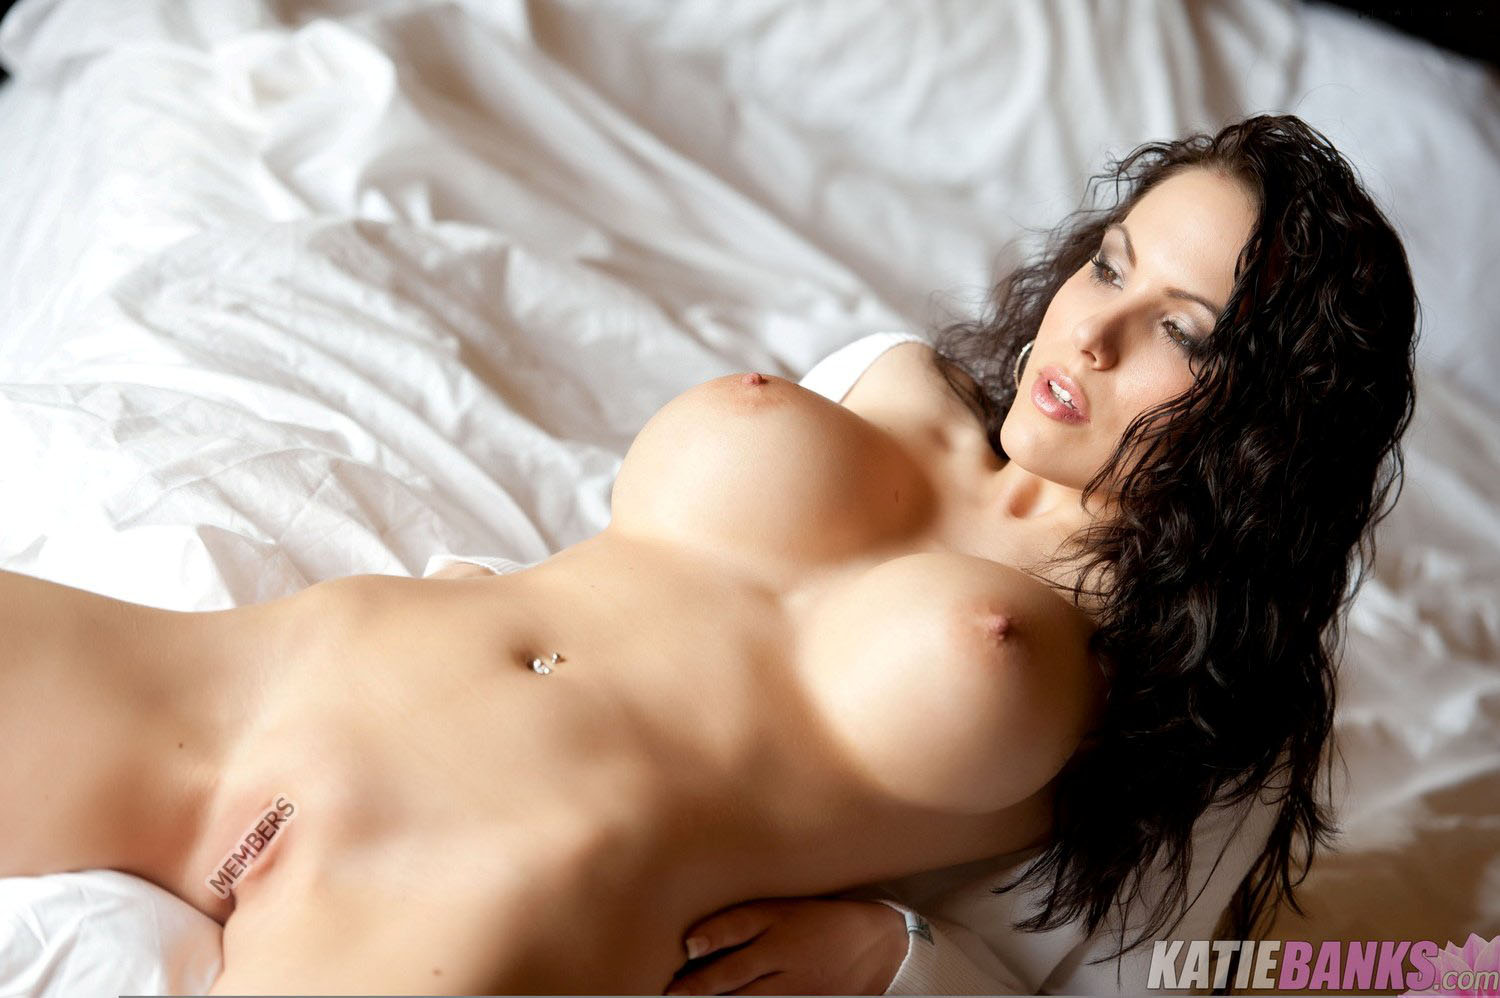 Kate banks naked, nude girls with bald pussy